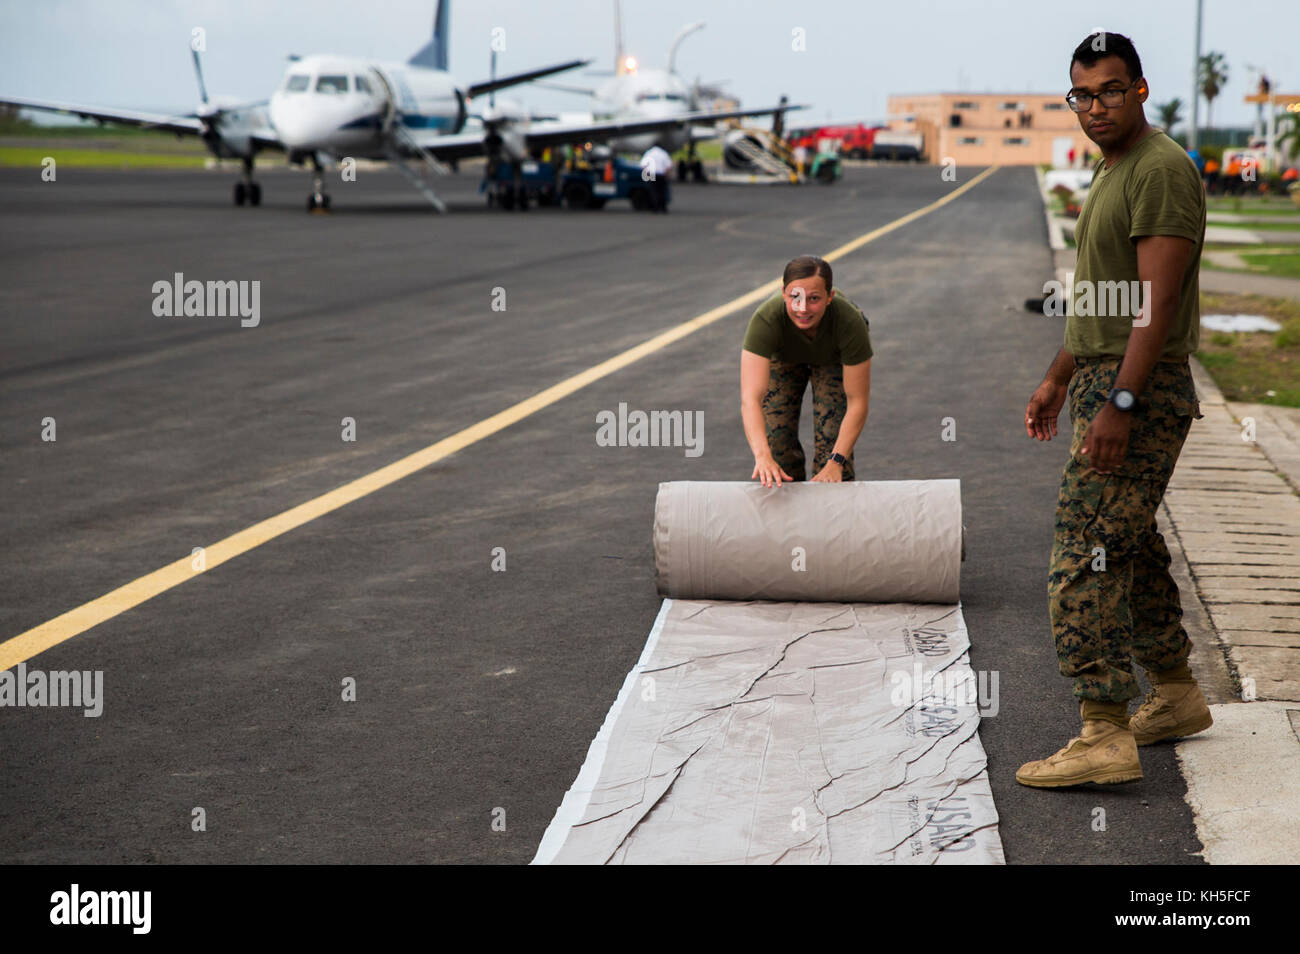 U.S. Marines with Joint Task Force - Leeward Islands unroll a U.S. Agency for International Development tarp as Stock Photo